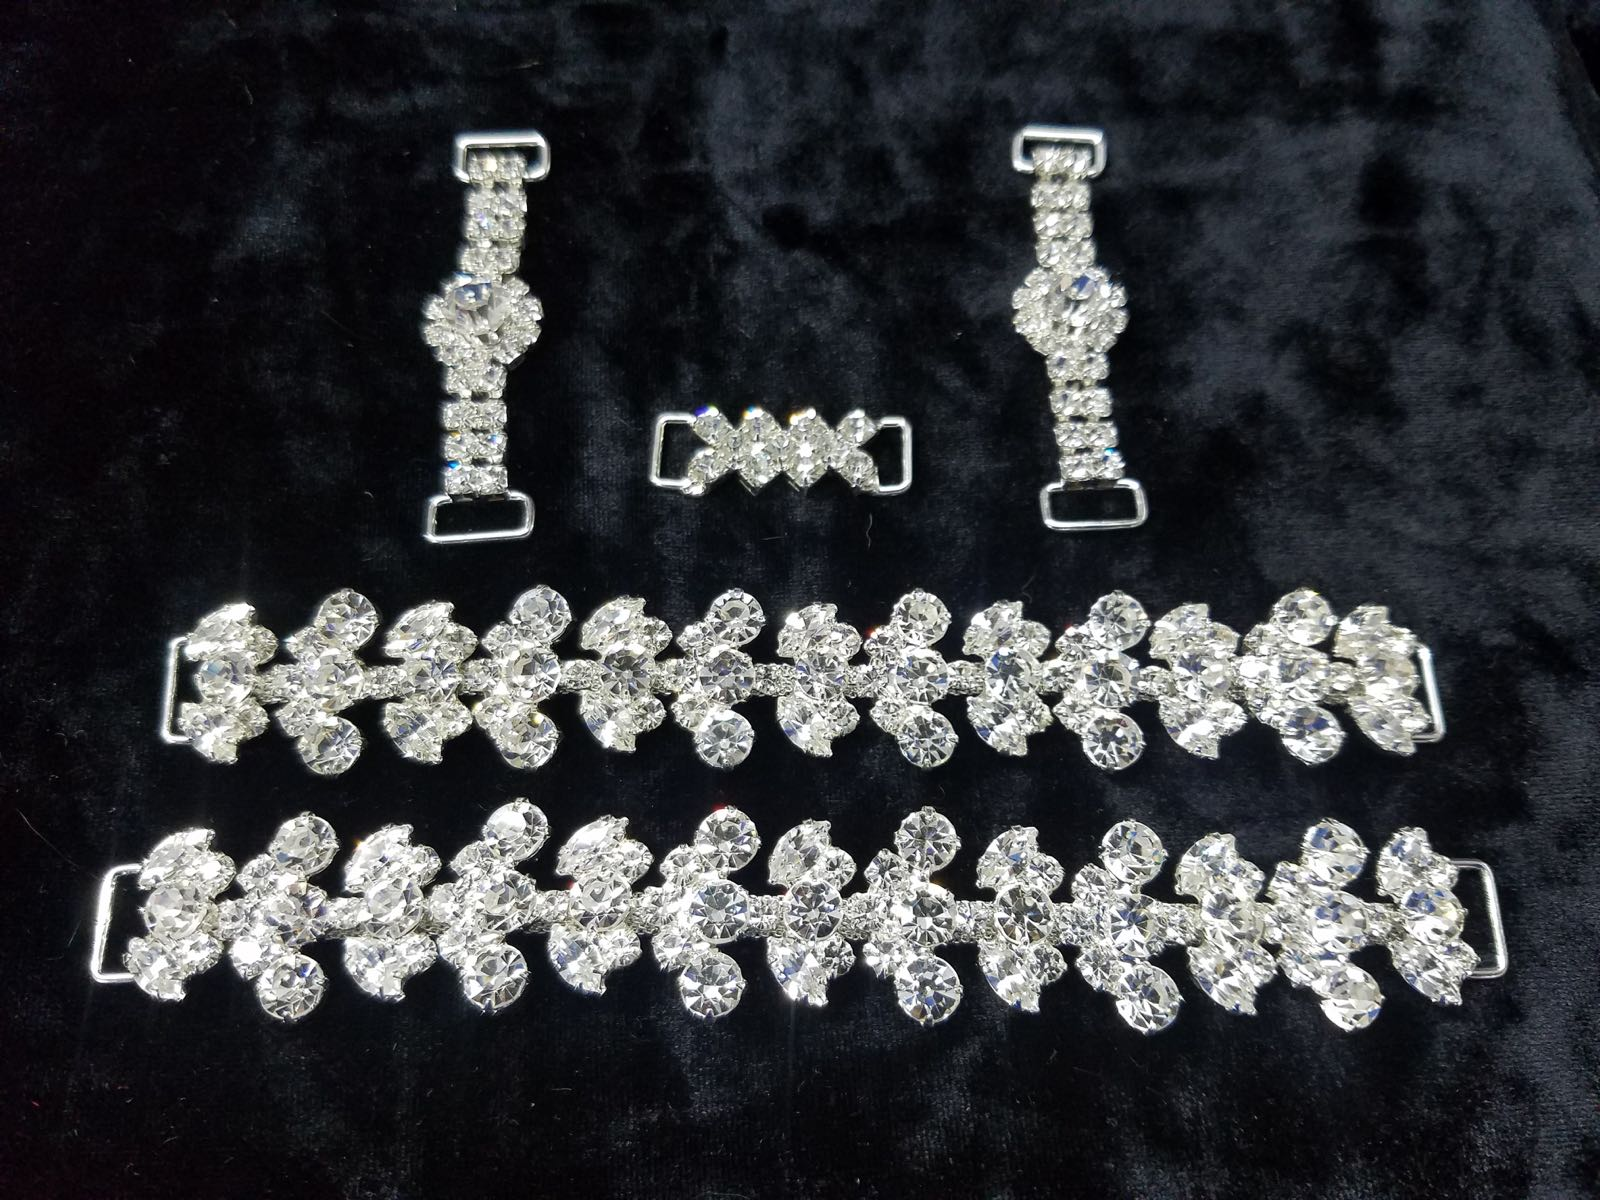 Set N, Silver with clear crystals, $116.00